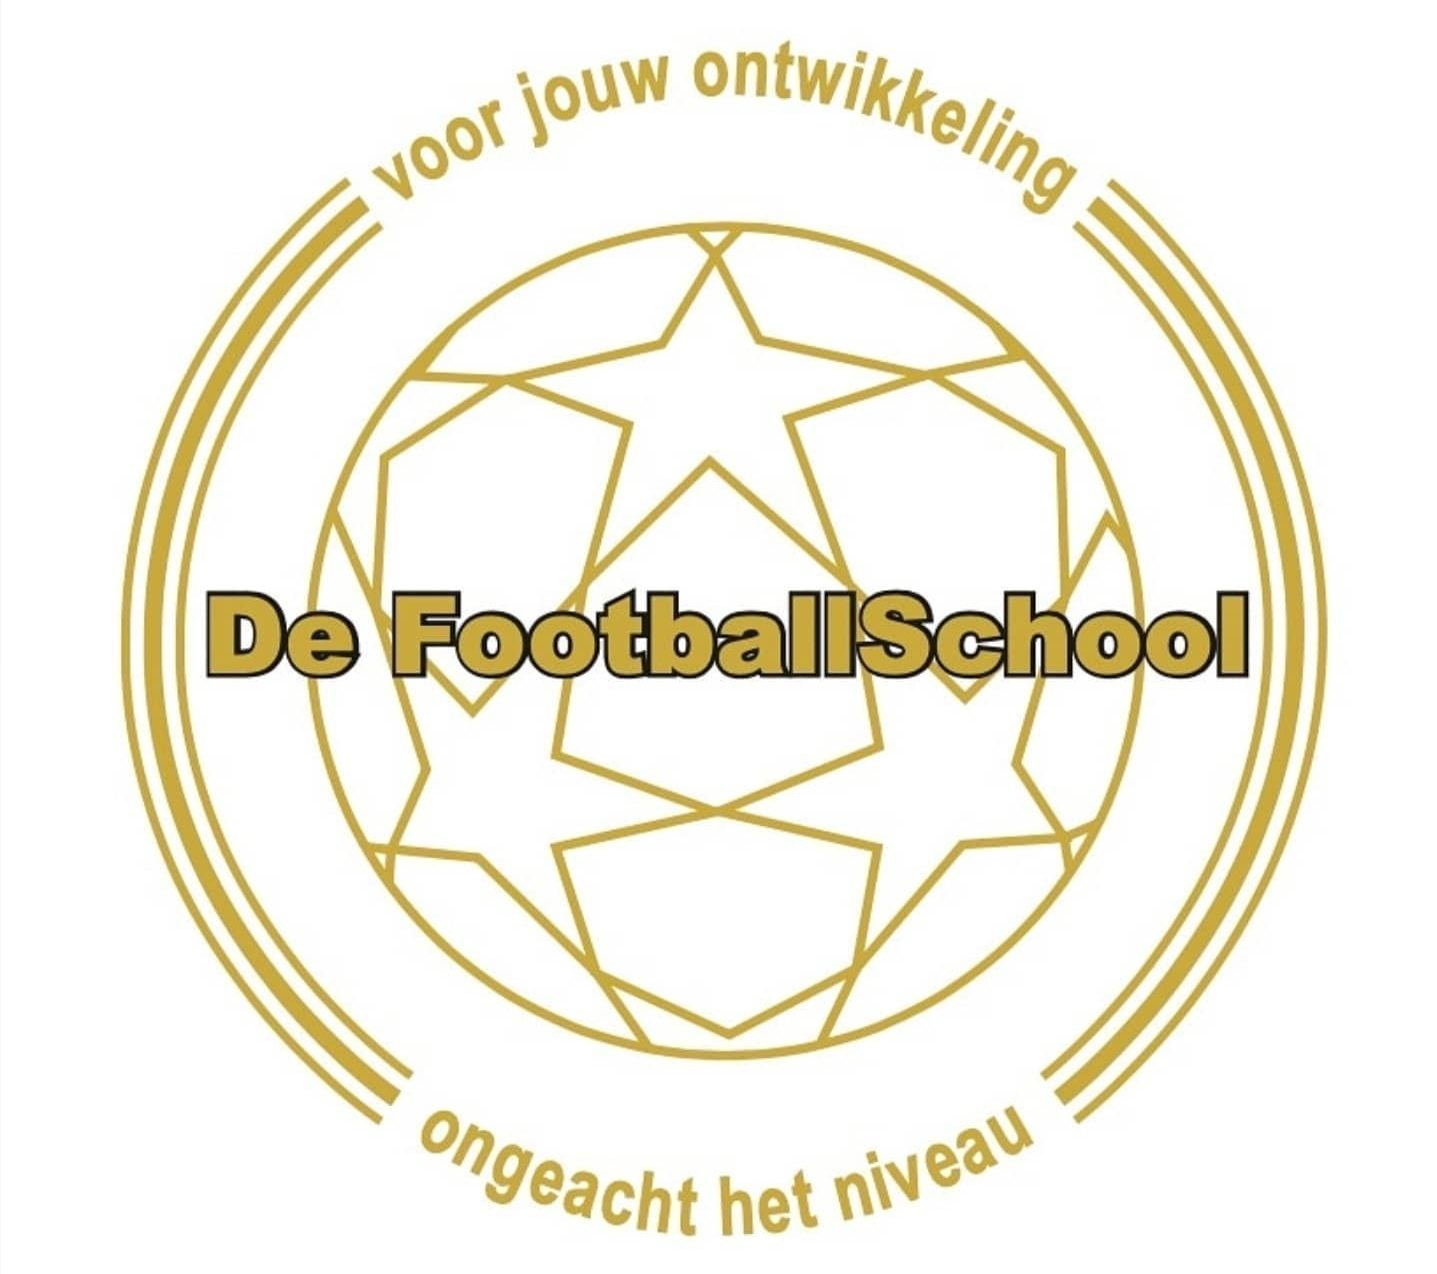 De footballschool